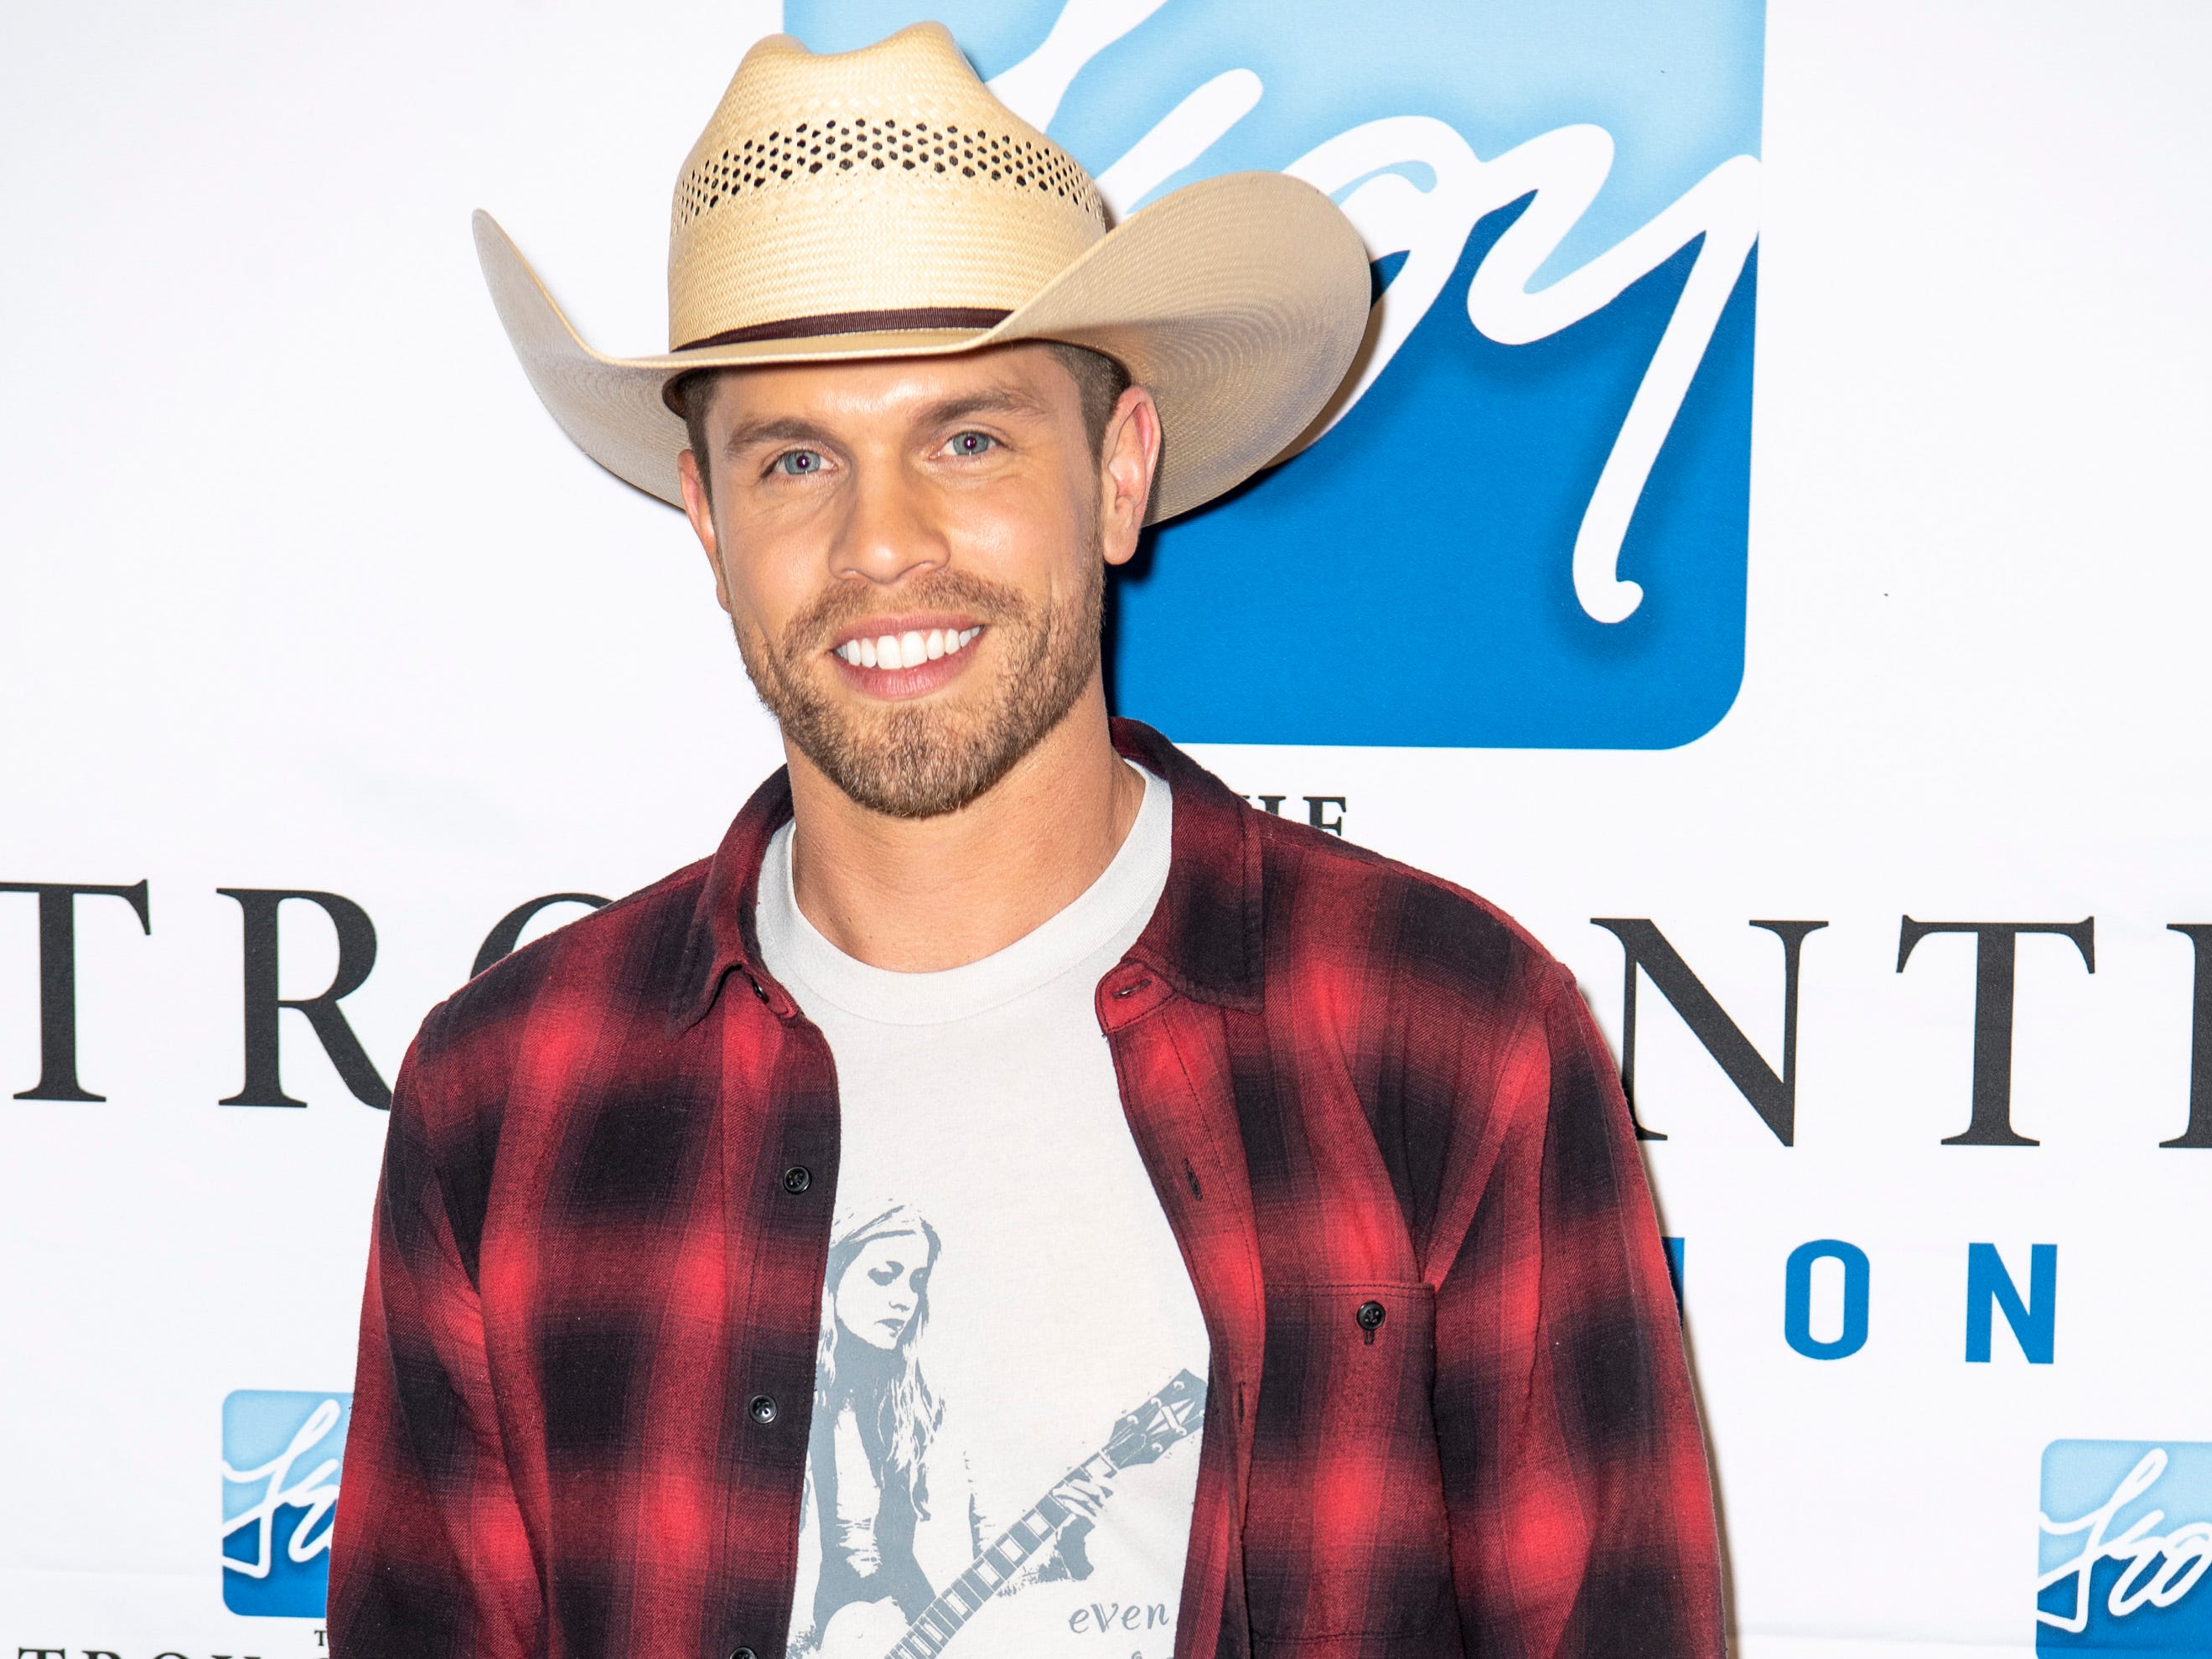 Dustin Lynch on the red carpet before the C'Ya On The Flipside Benefit Concert at the Grand Ole Opry House in Nashville, Tenn., Wednesday, Jan. 9, 2019.